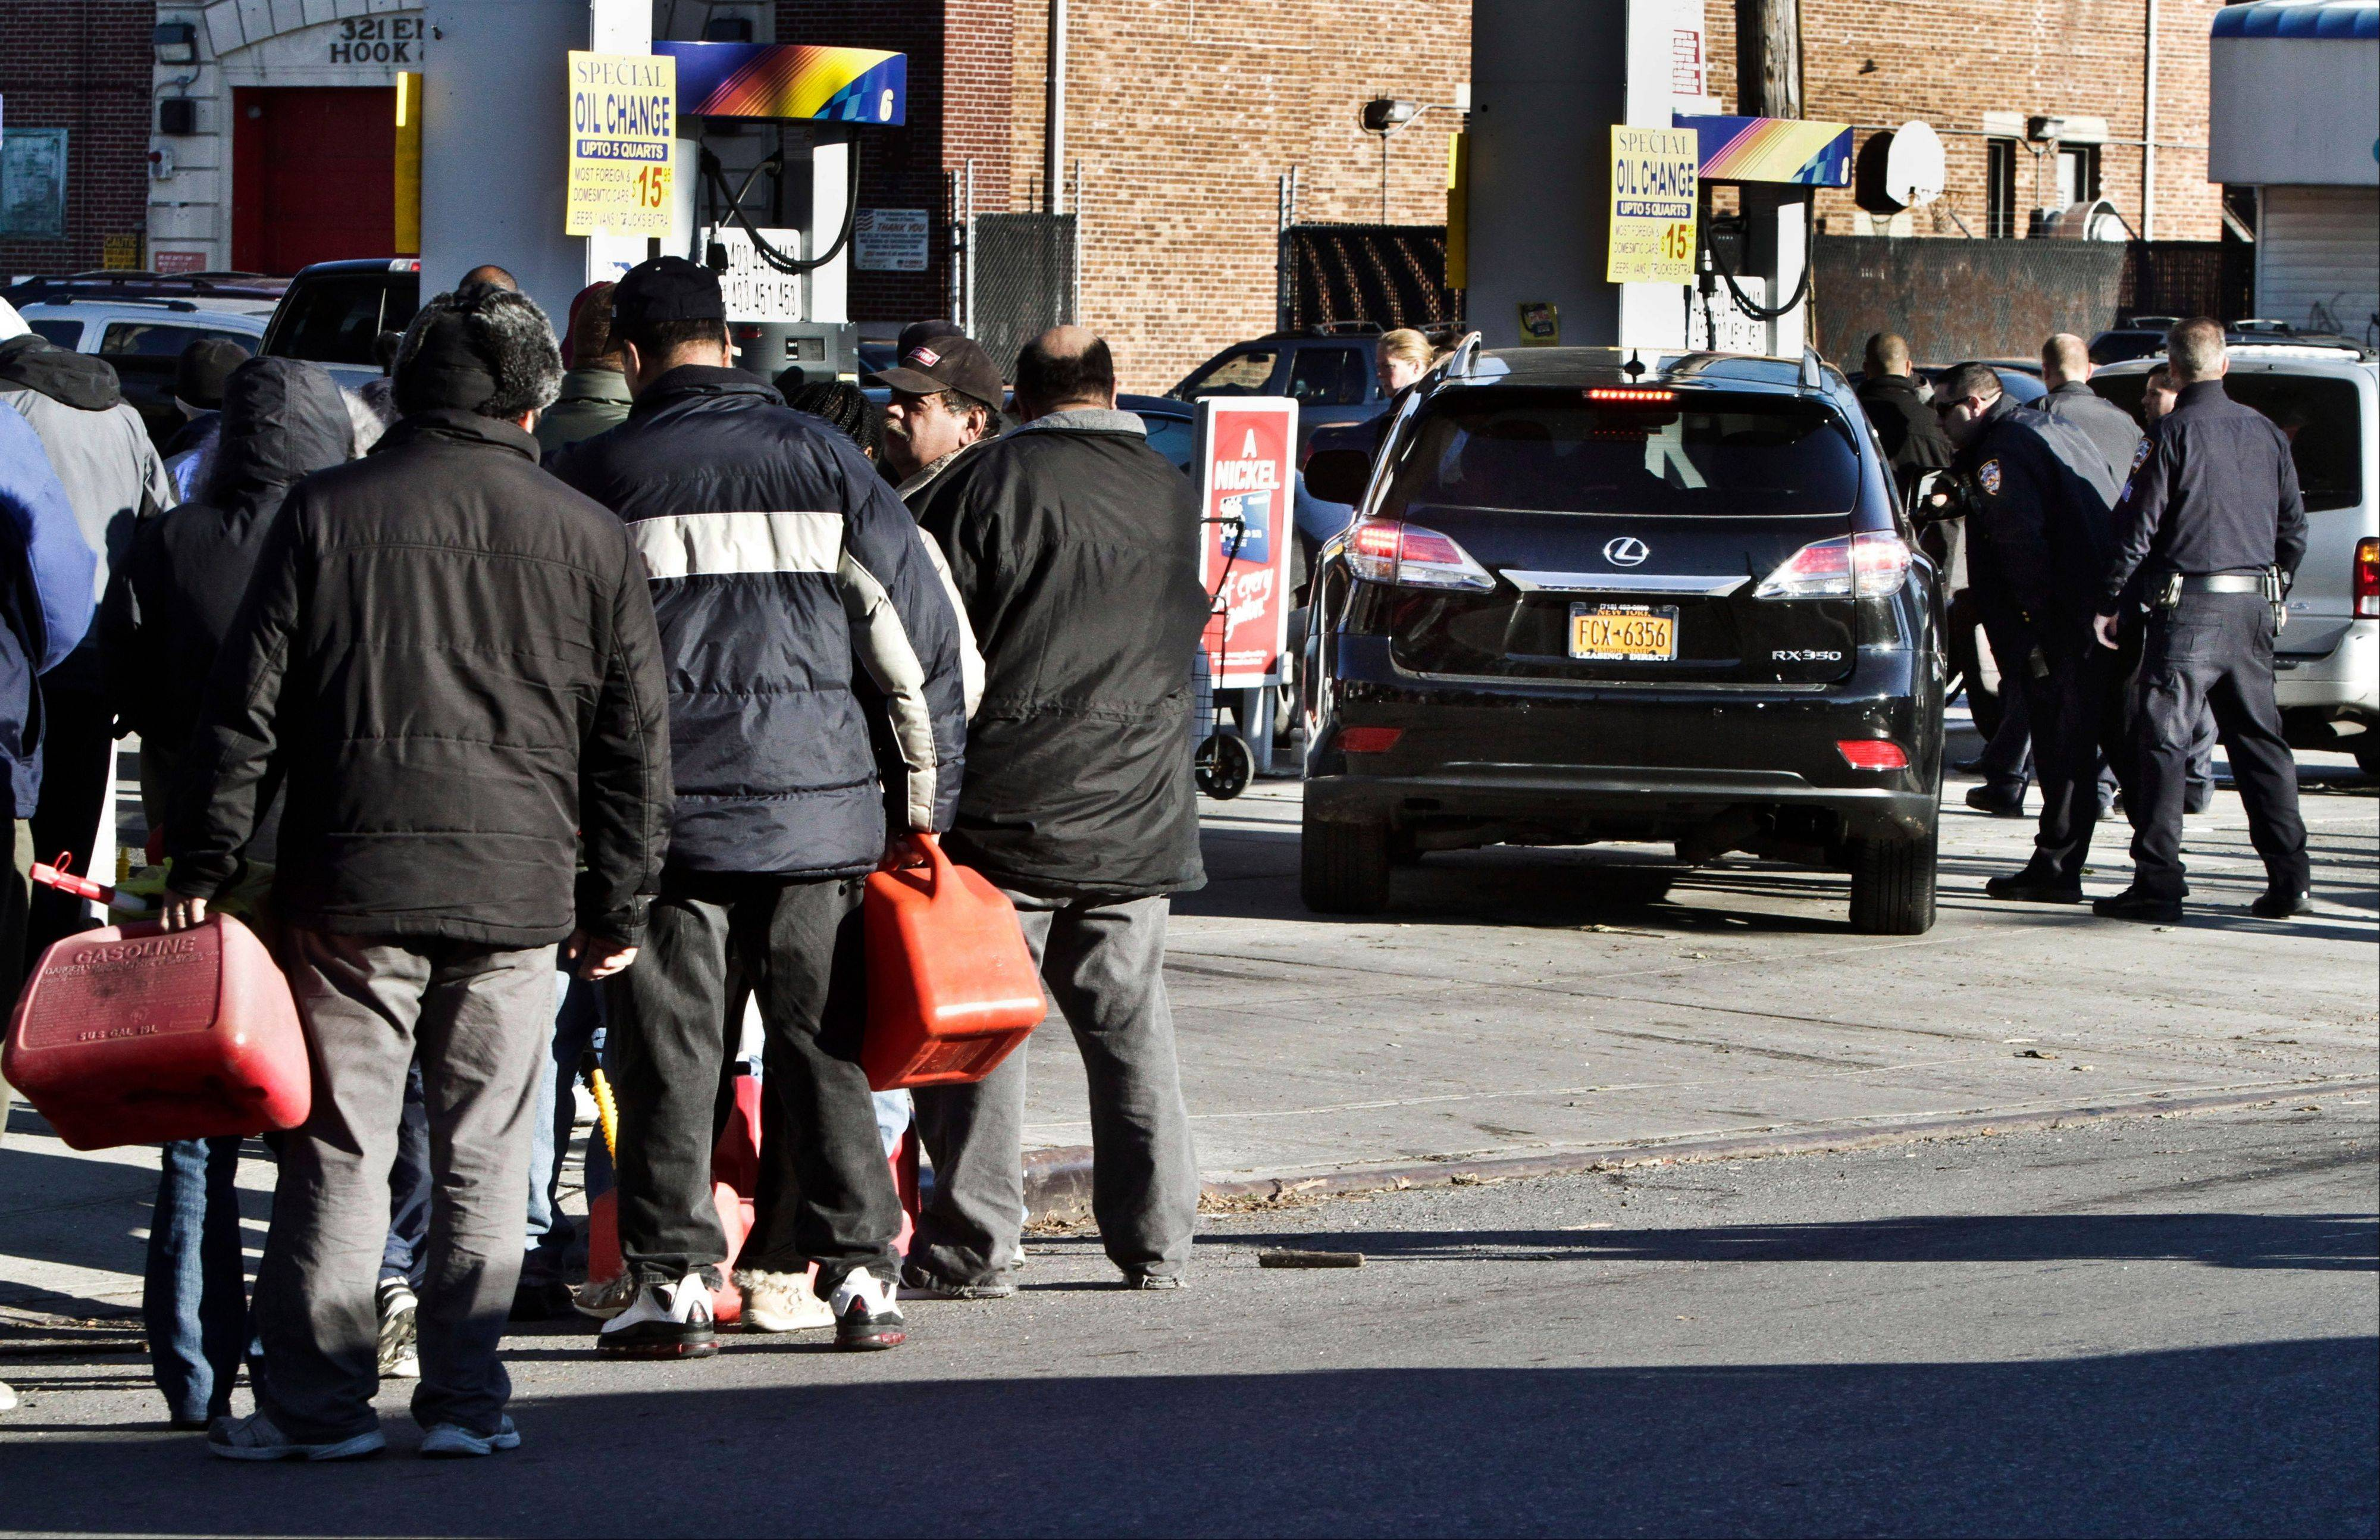 Police direct cars to pumps while people stand in line with containers for gas on Friday, Nov. 9, 2012 in the Brooklyn borough of New York. Police were at gas stations to enforce a new gasoline rationing plan that lets motorists fill up every other day.